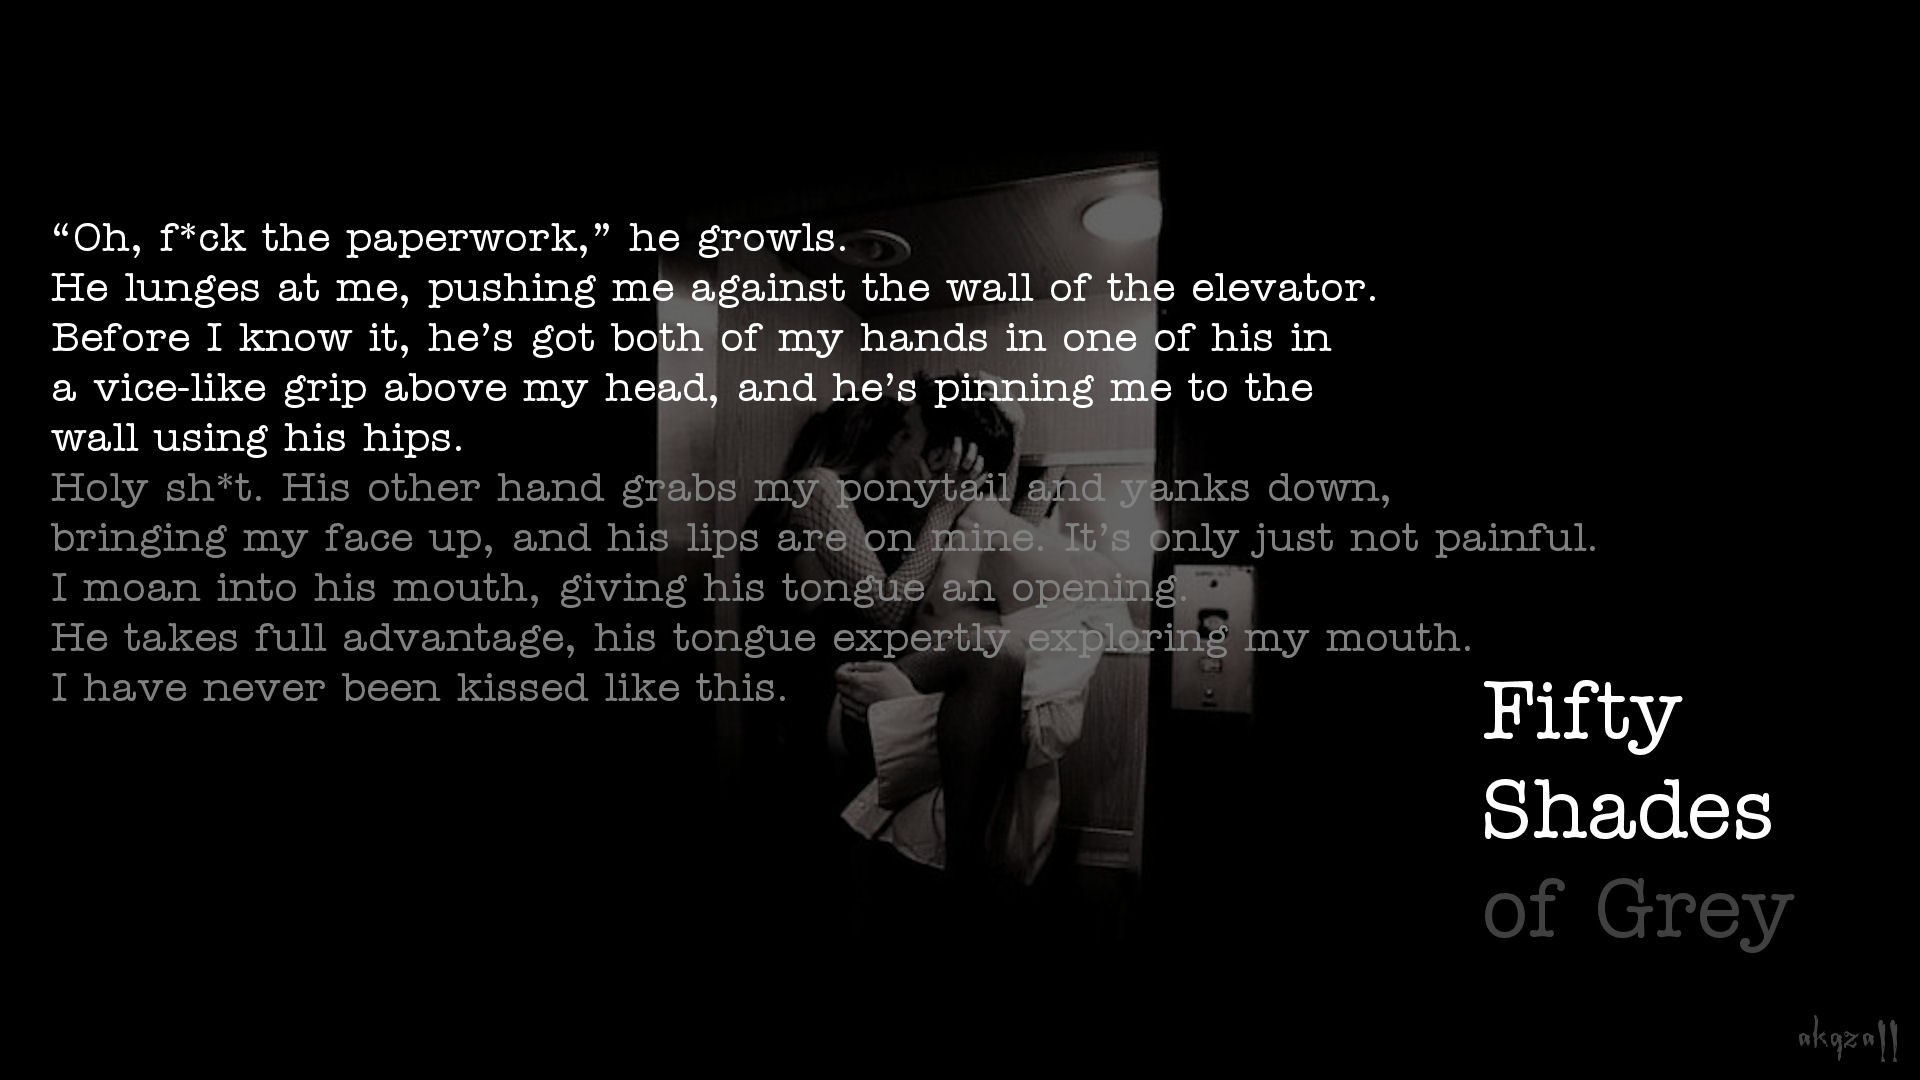 Quotes From 50 Shades Of Grey Visual Quotes Elevator Scene  50 Shades Of Grey Trilogy Fan Page